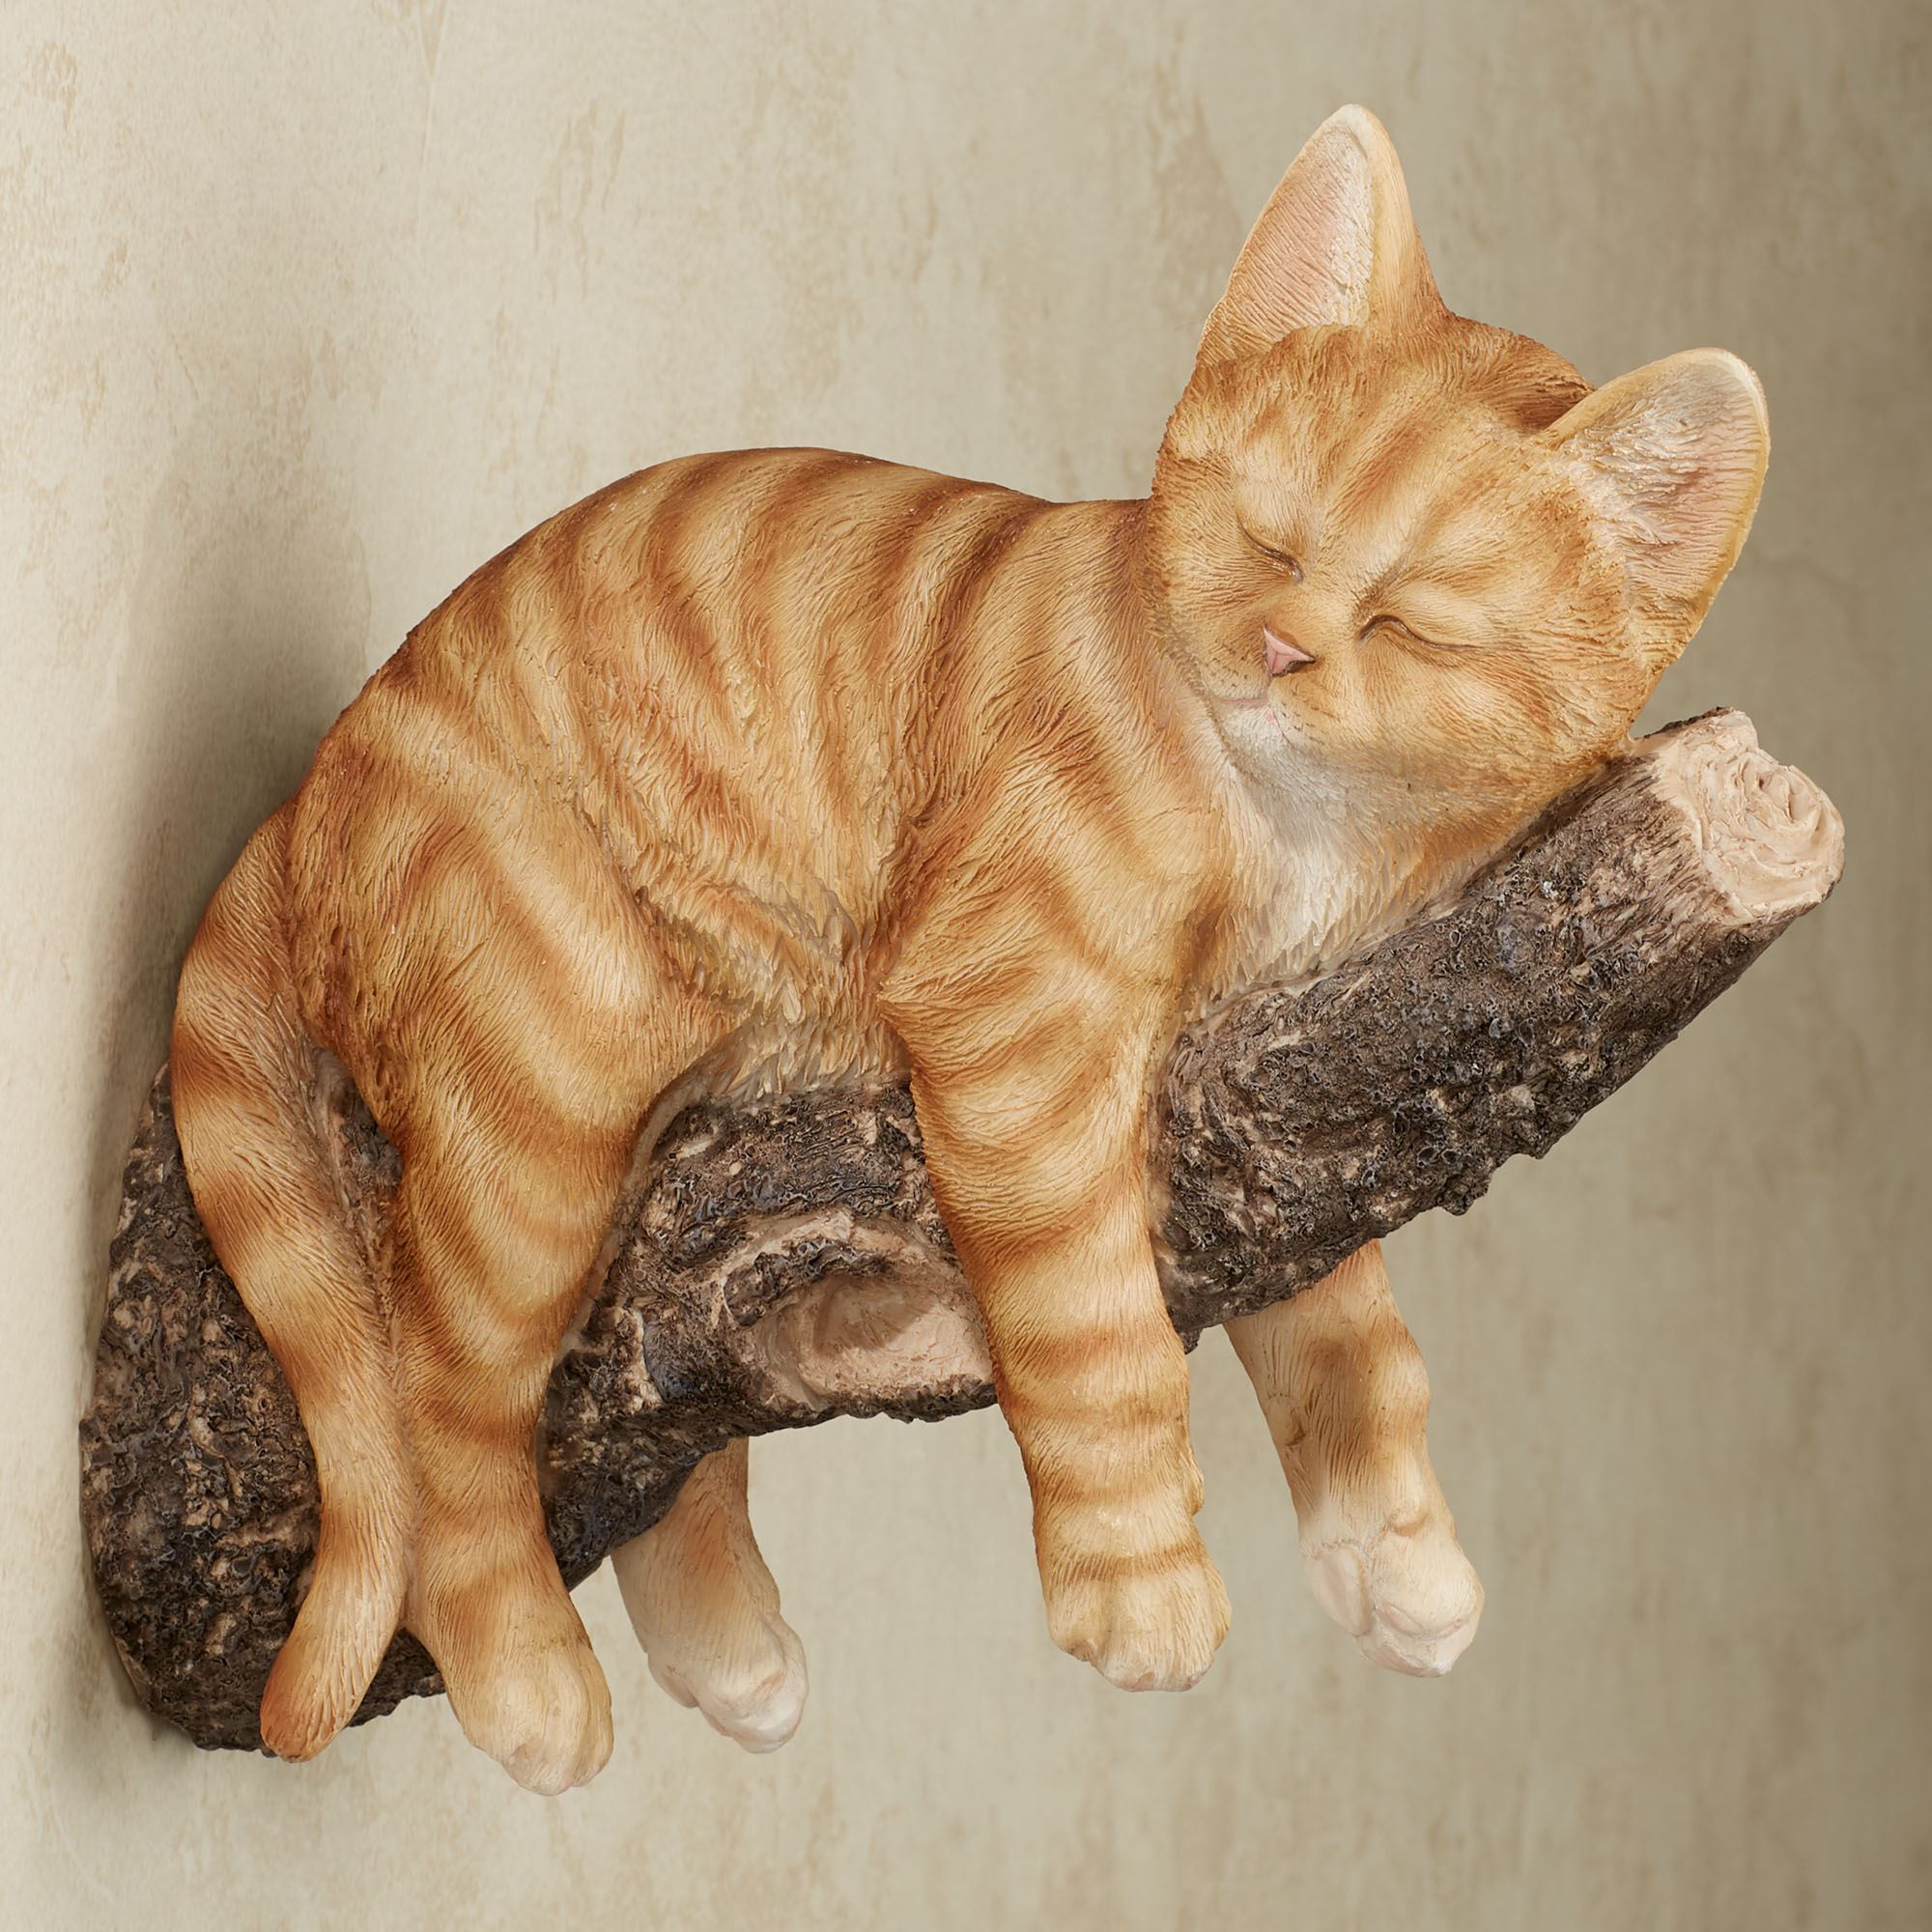 Catnap Striped Orange Sleeping Kitten Wall Accent